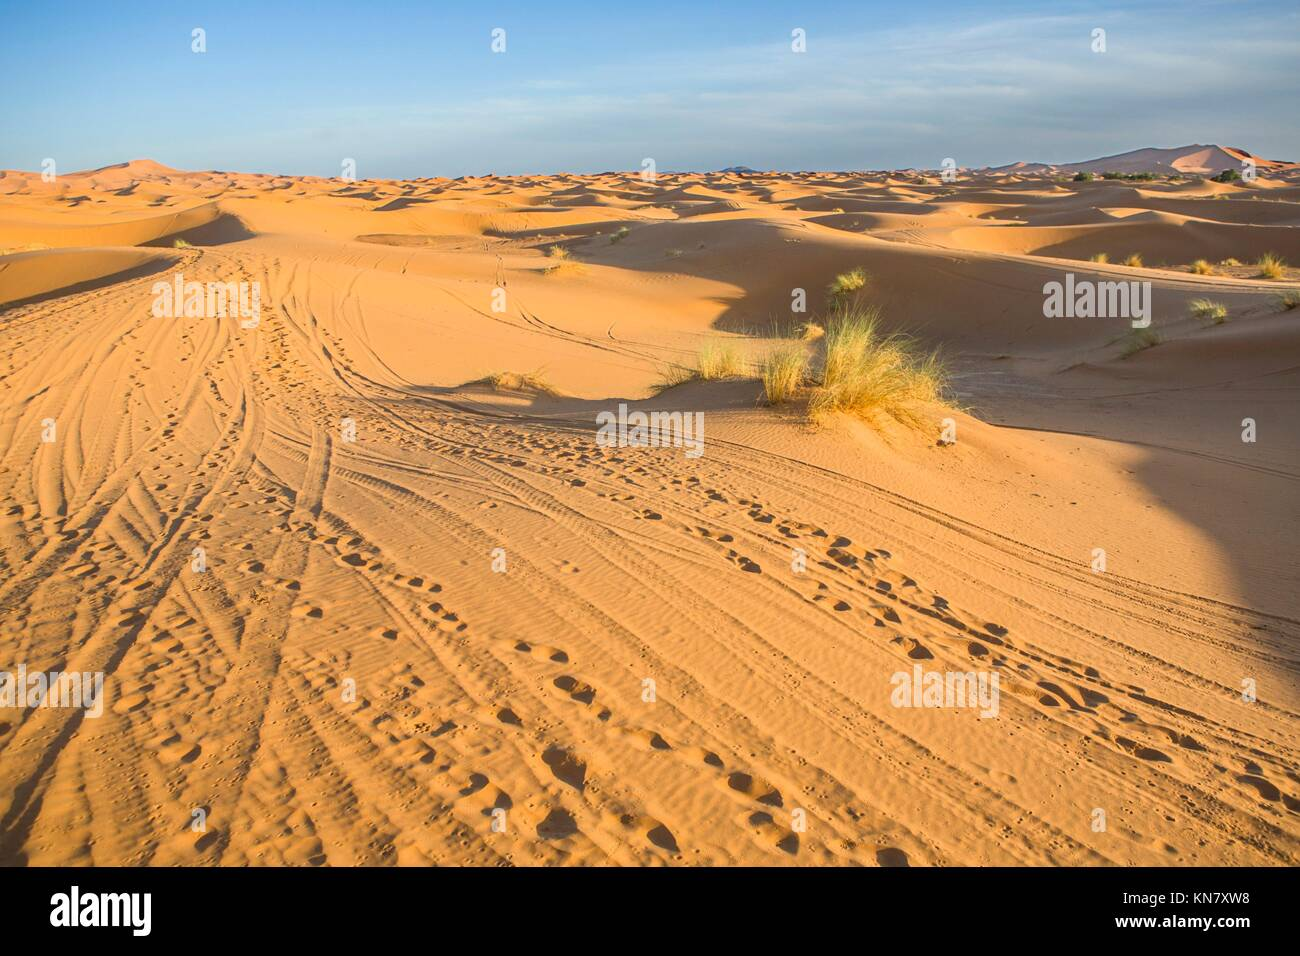 Several sand hill at Erg Chebbi in the Sahara desert. Ers are large dunes formed by wind-blown sand. Morocco. Stock Photo